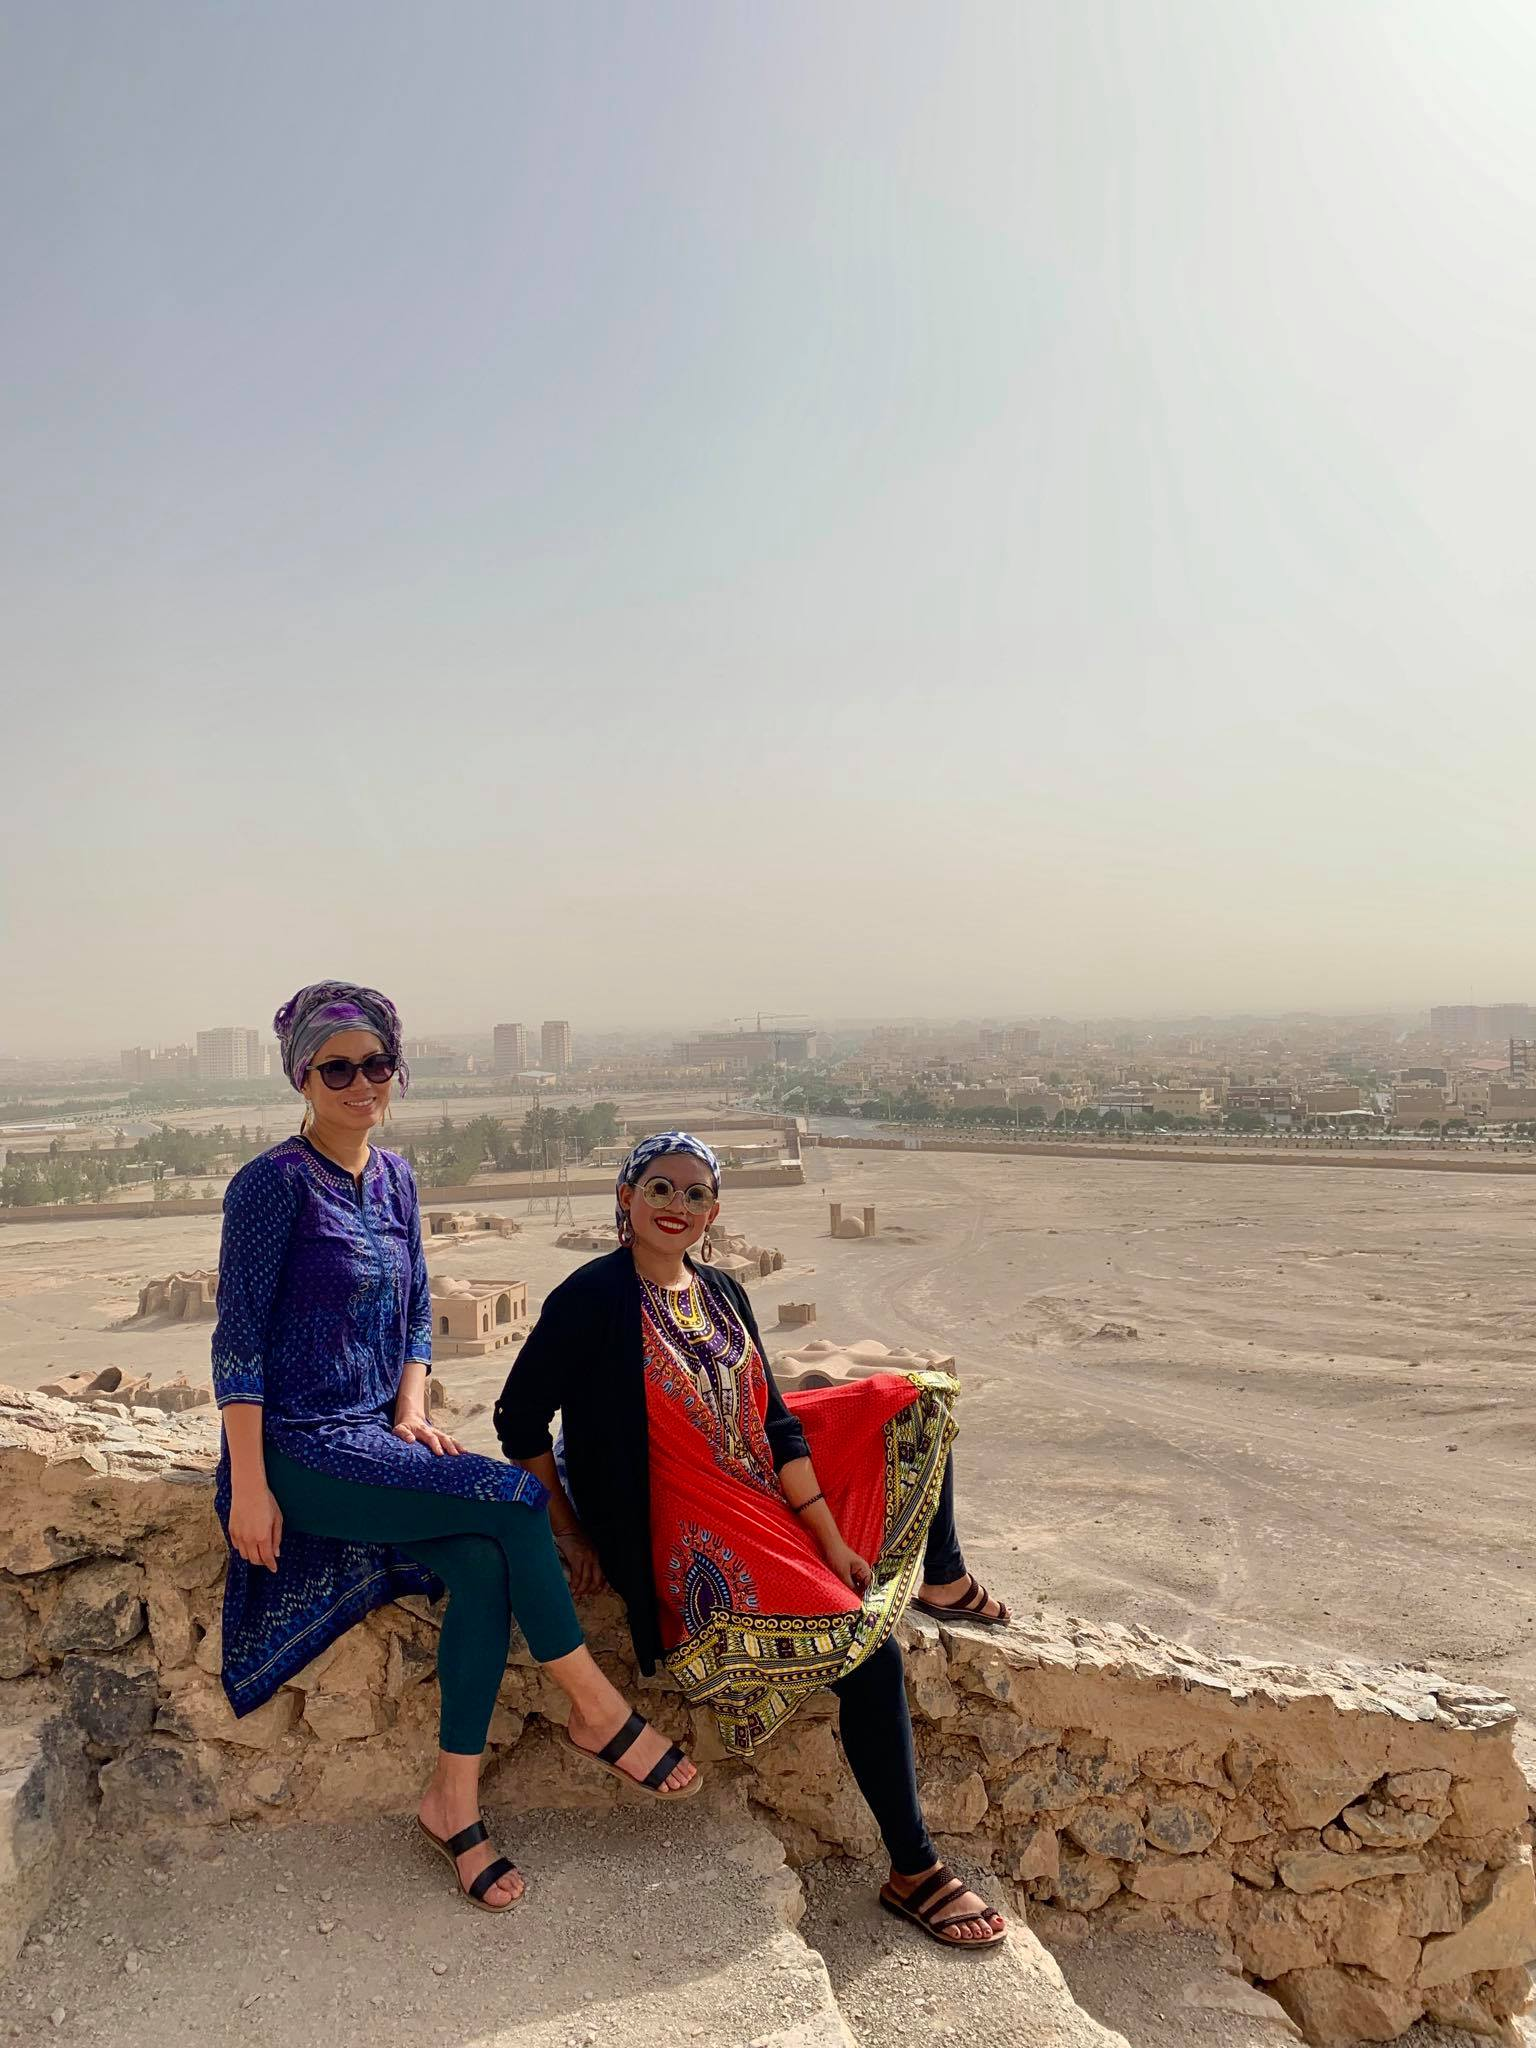 Kach Solo Travels in 2019 Pictorial today at Temple of Silence in Yazd3.jpg